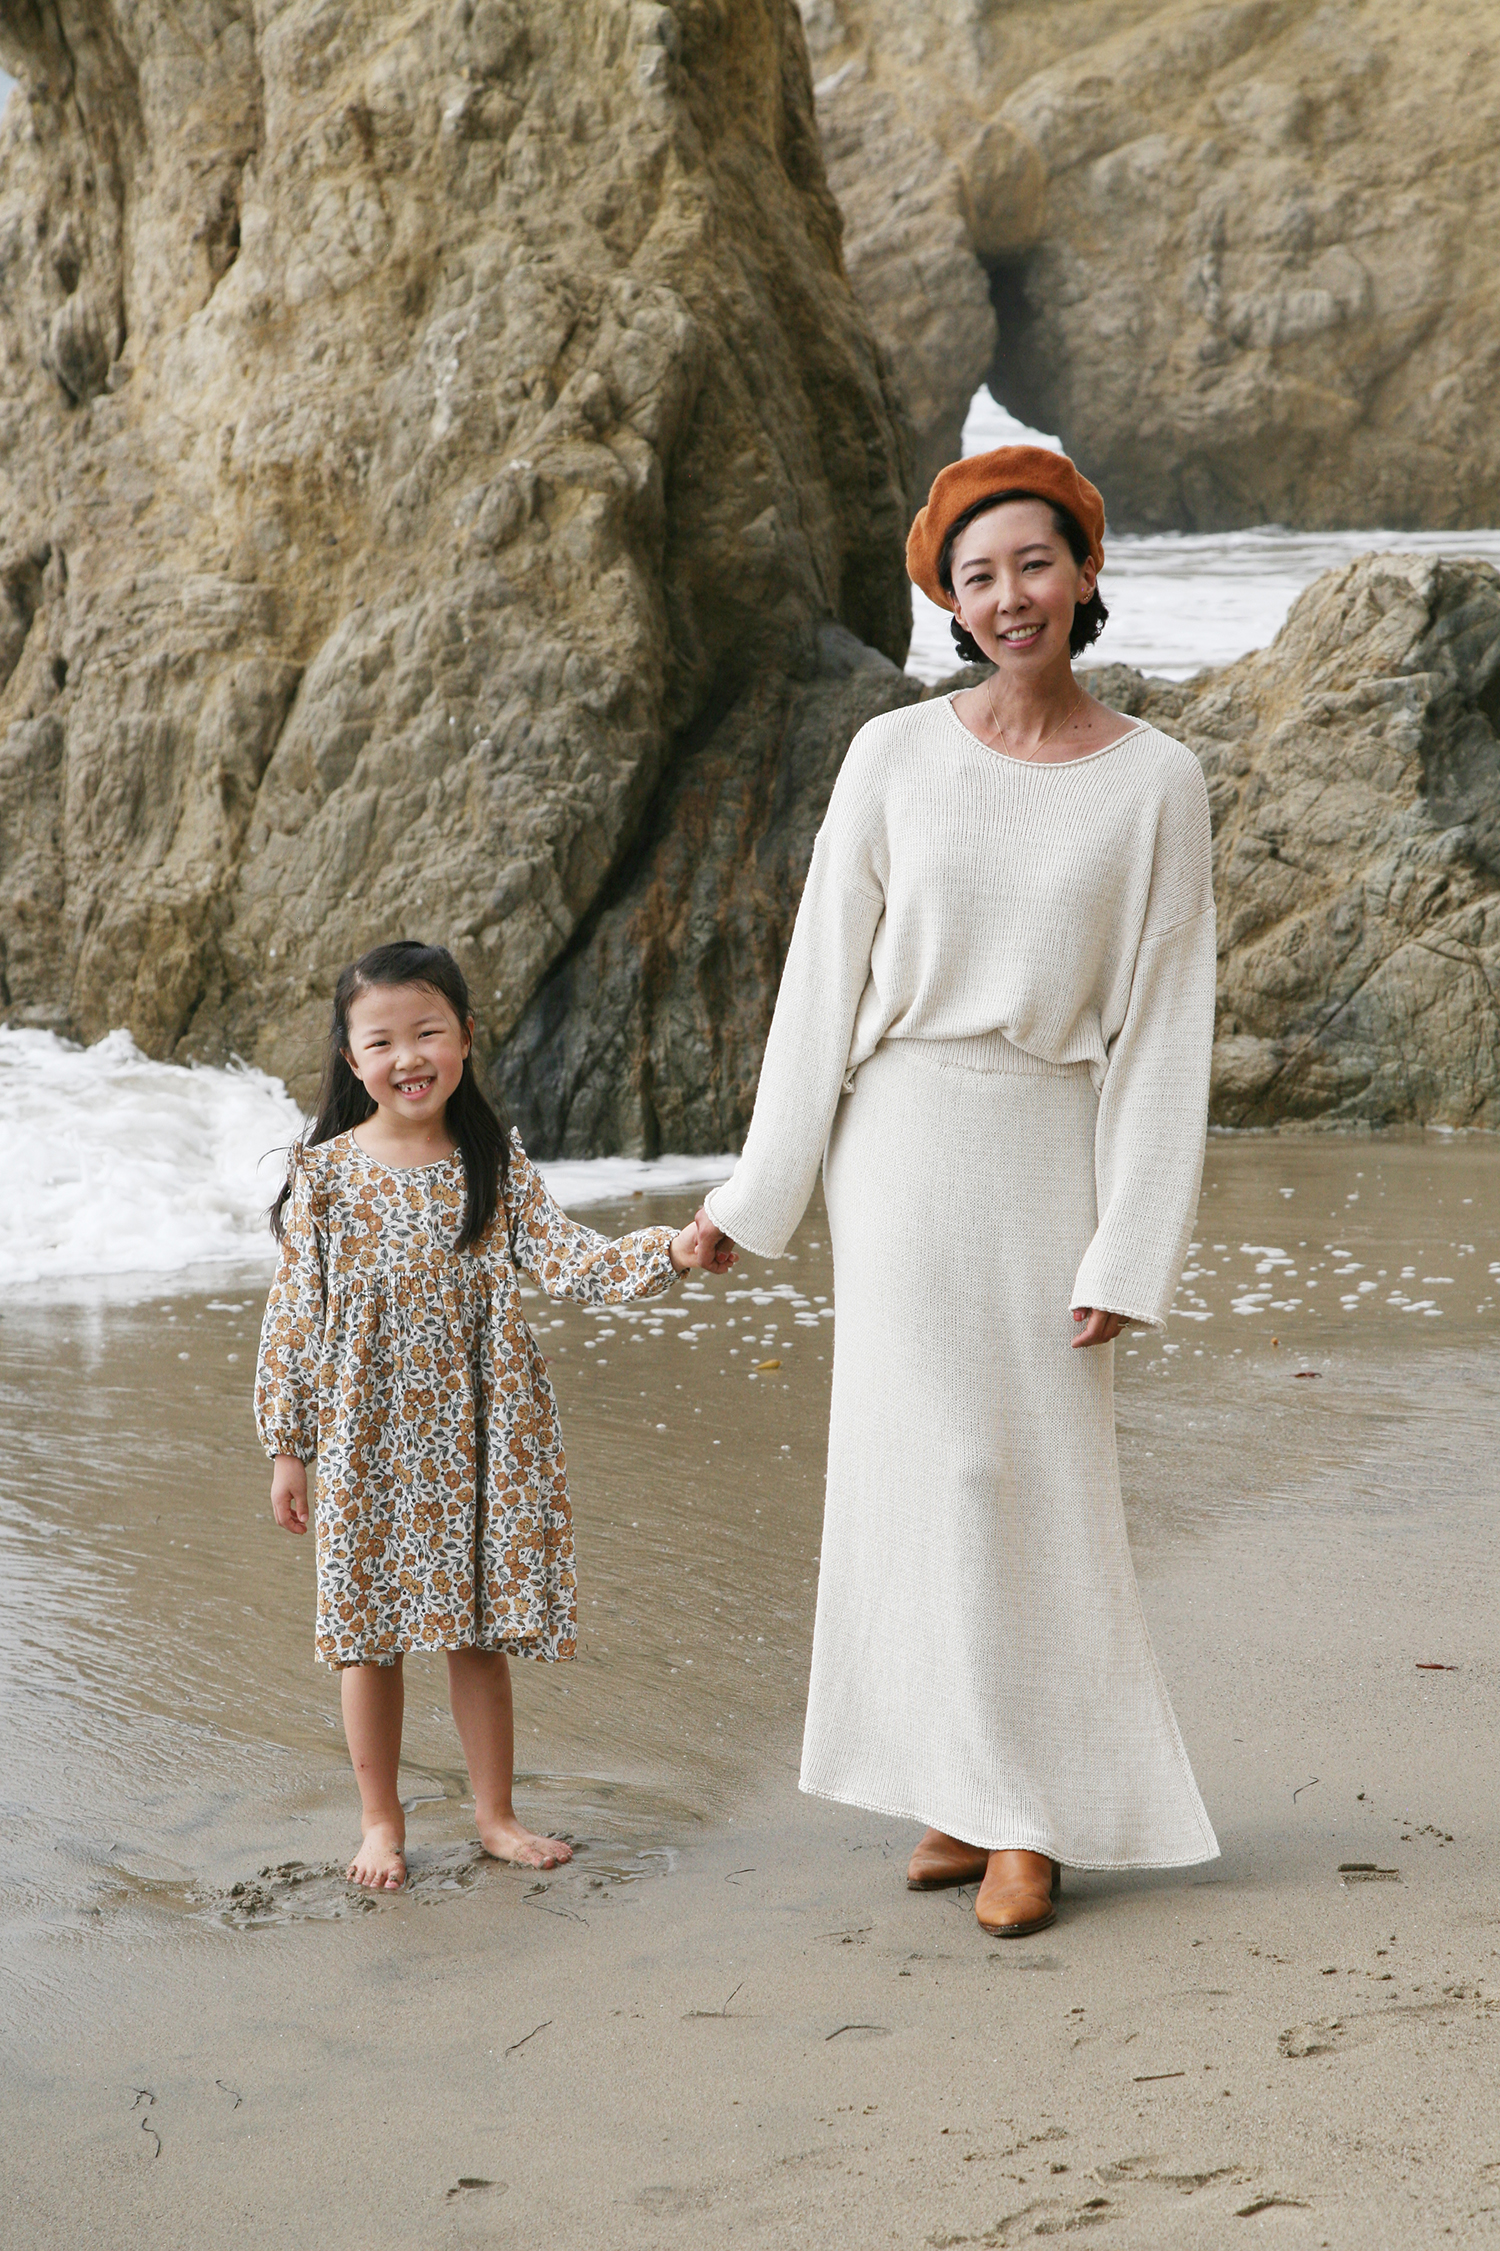 Jeanee and her daughter are standing on a beach. They're holding hands and smiling at the camera.